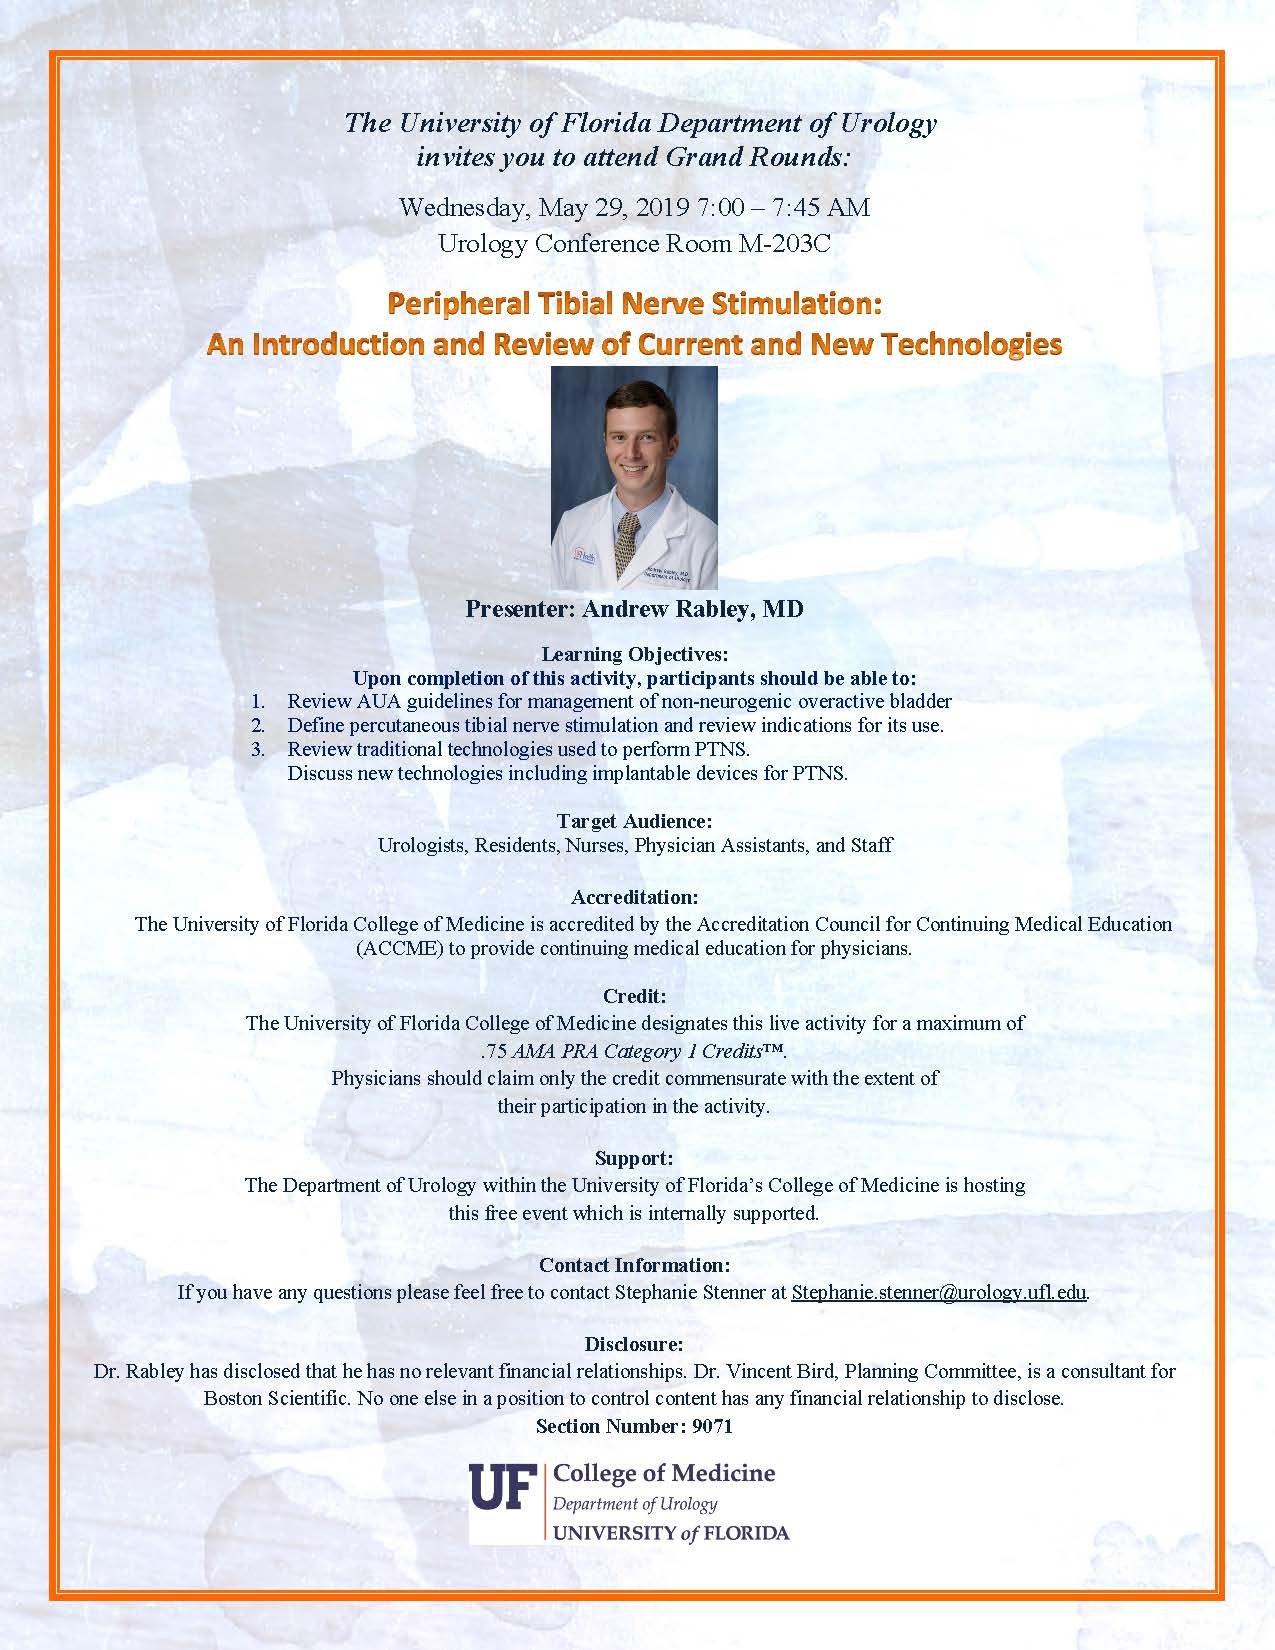 picture of grand rounds flyer for dr rabley